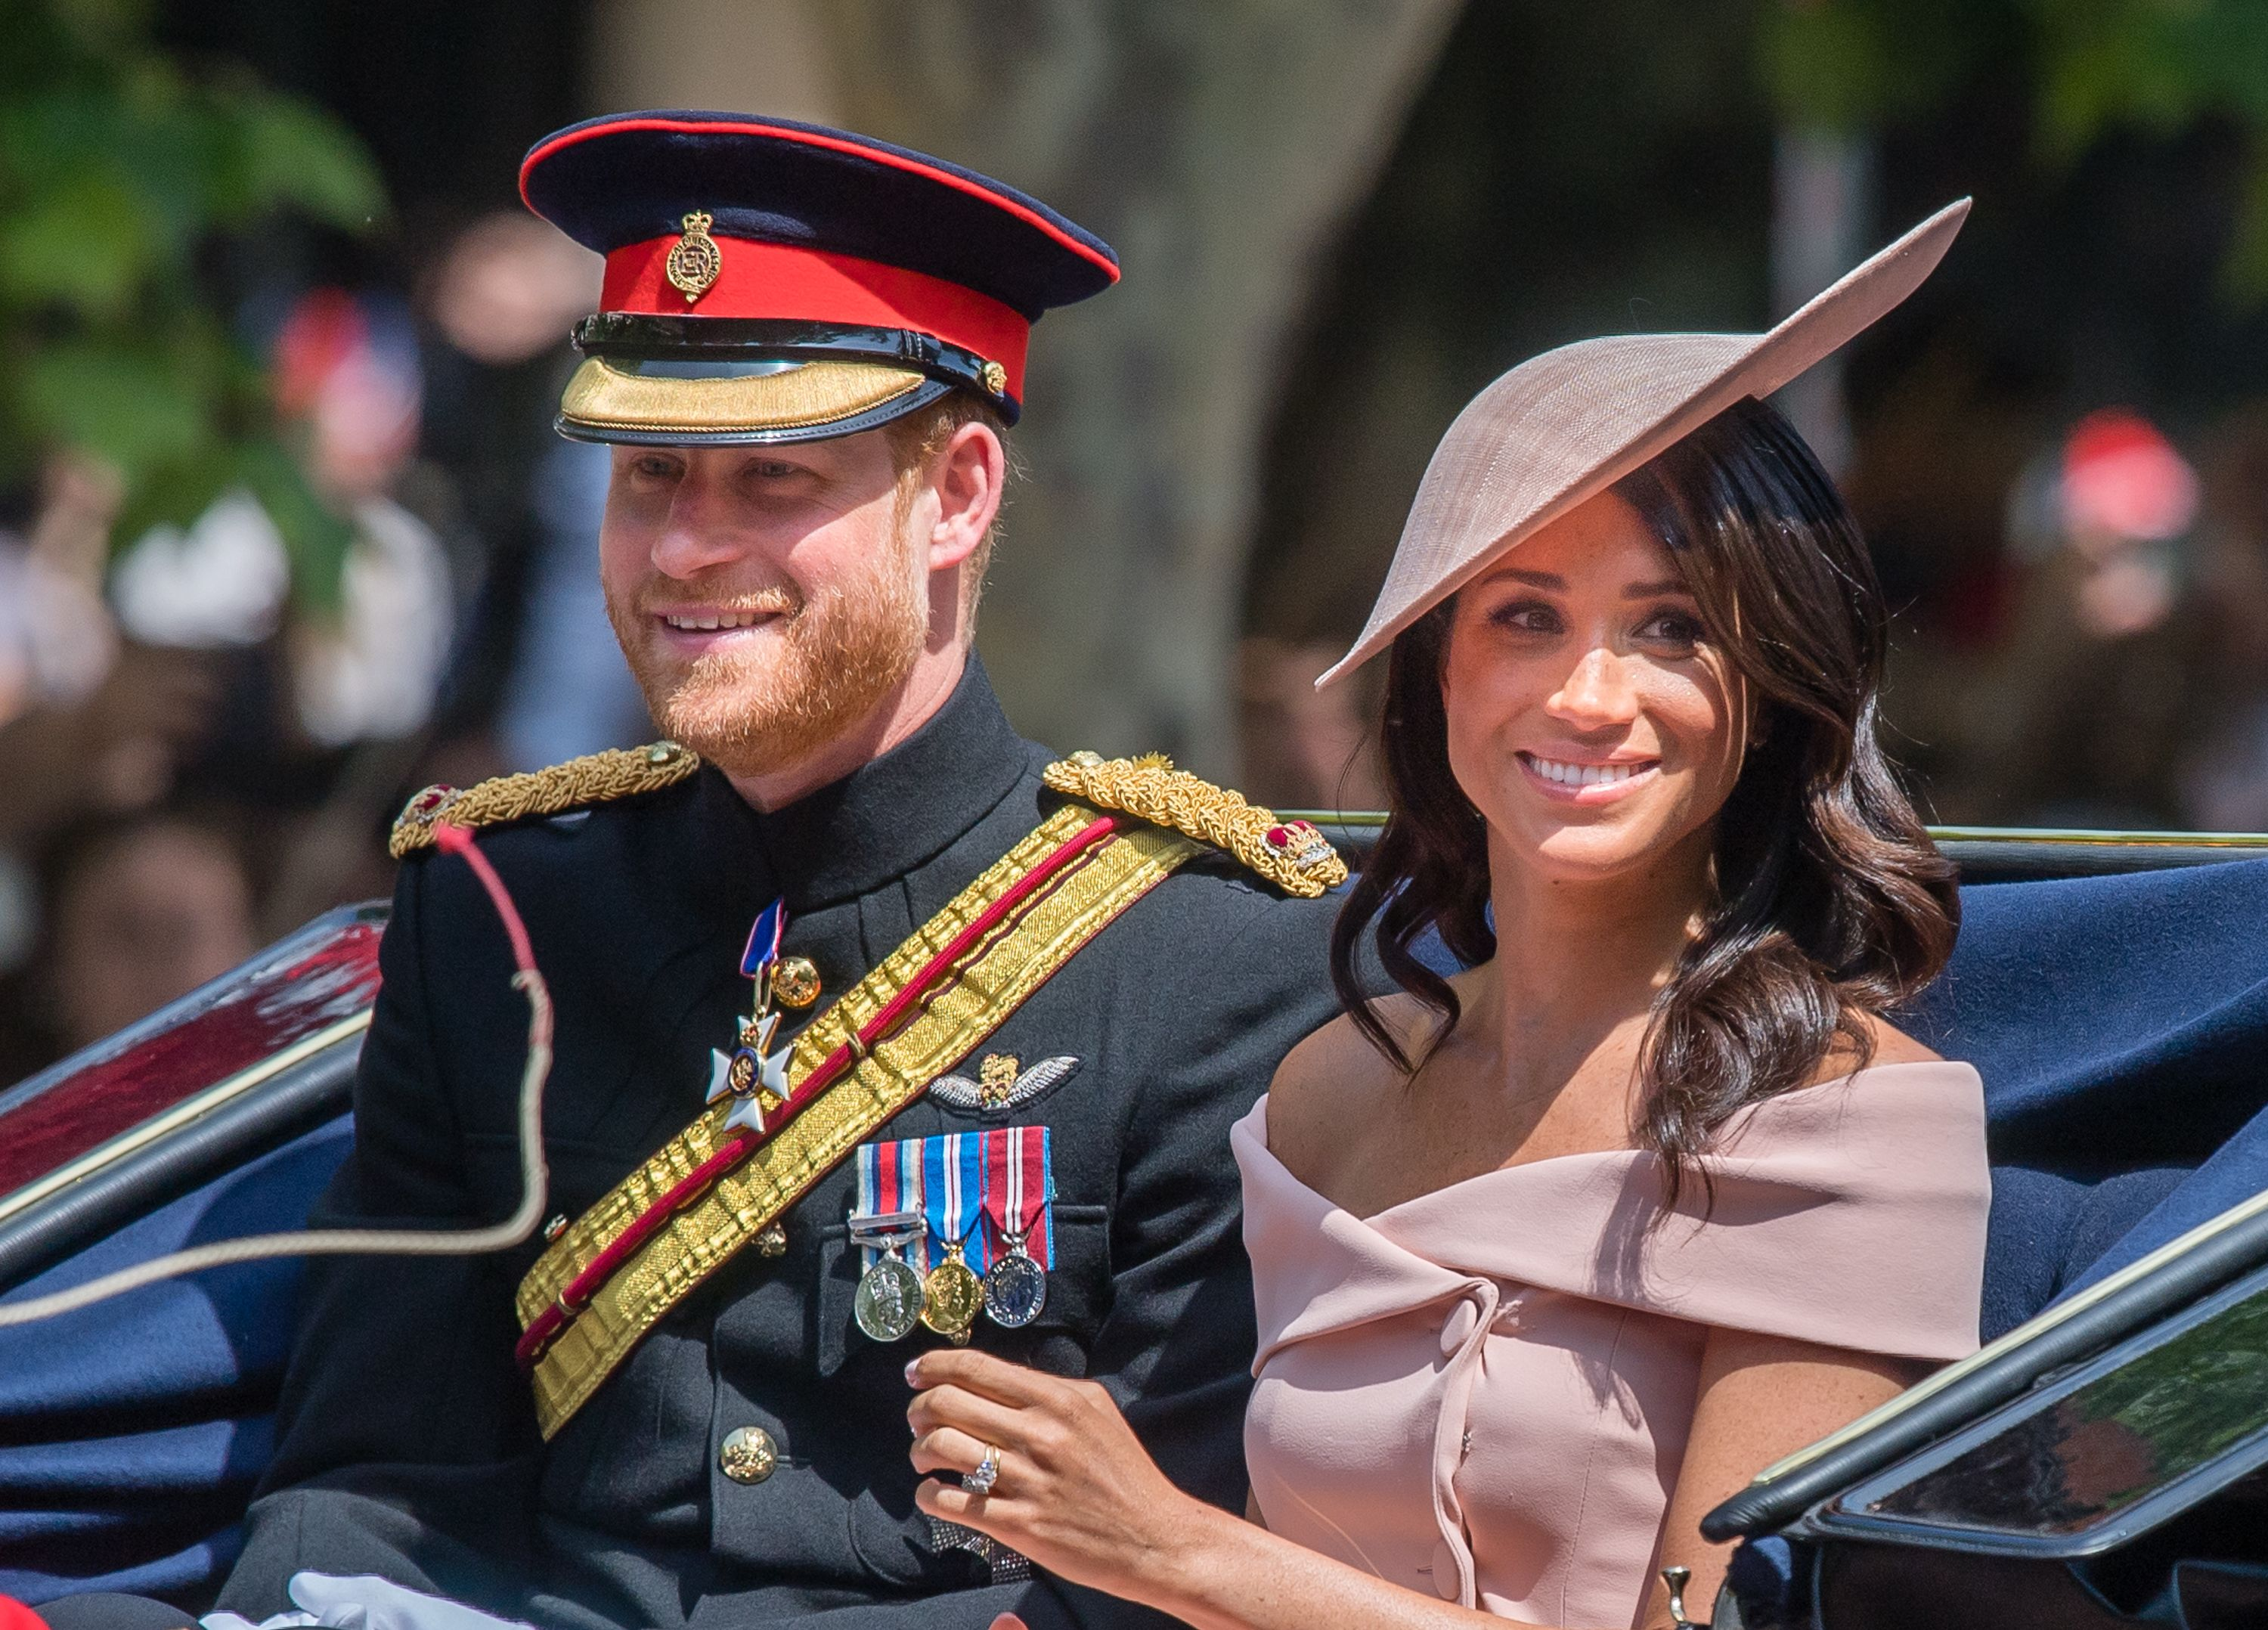 Prince Harry on secretly meeting Meghan in a supermarket and how she feels about princess life now